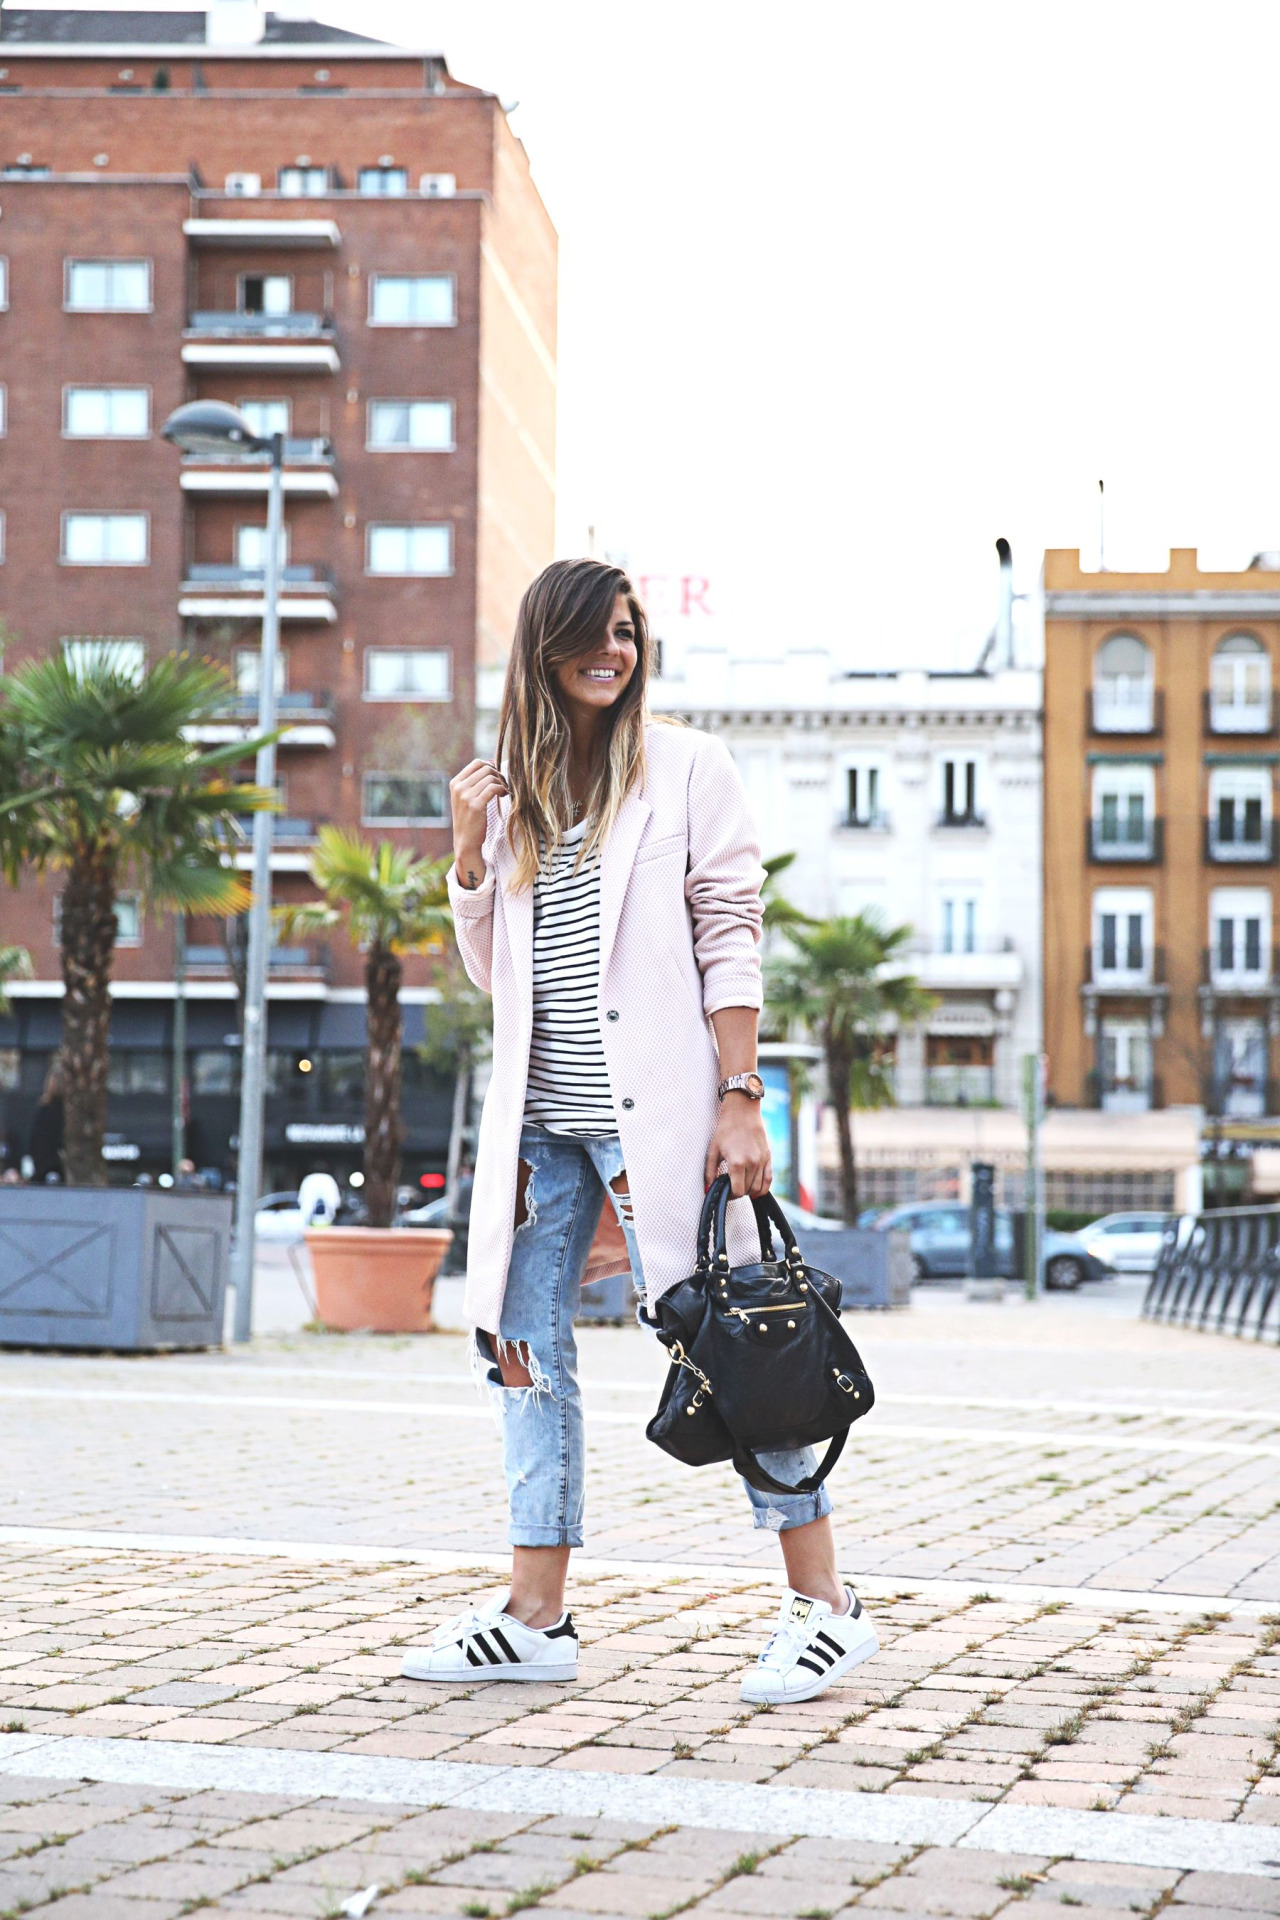 Natalia Cabezas is wearing a blue and white striped T-shirt from Zara